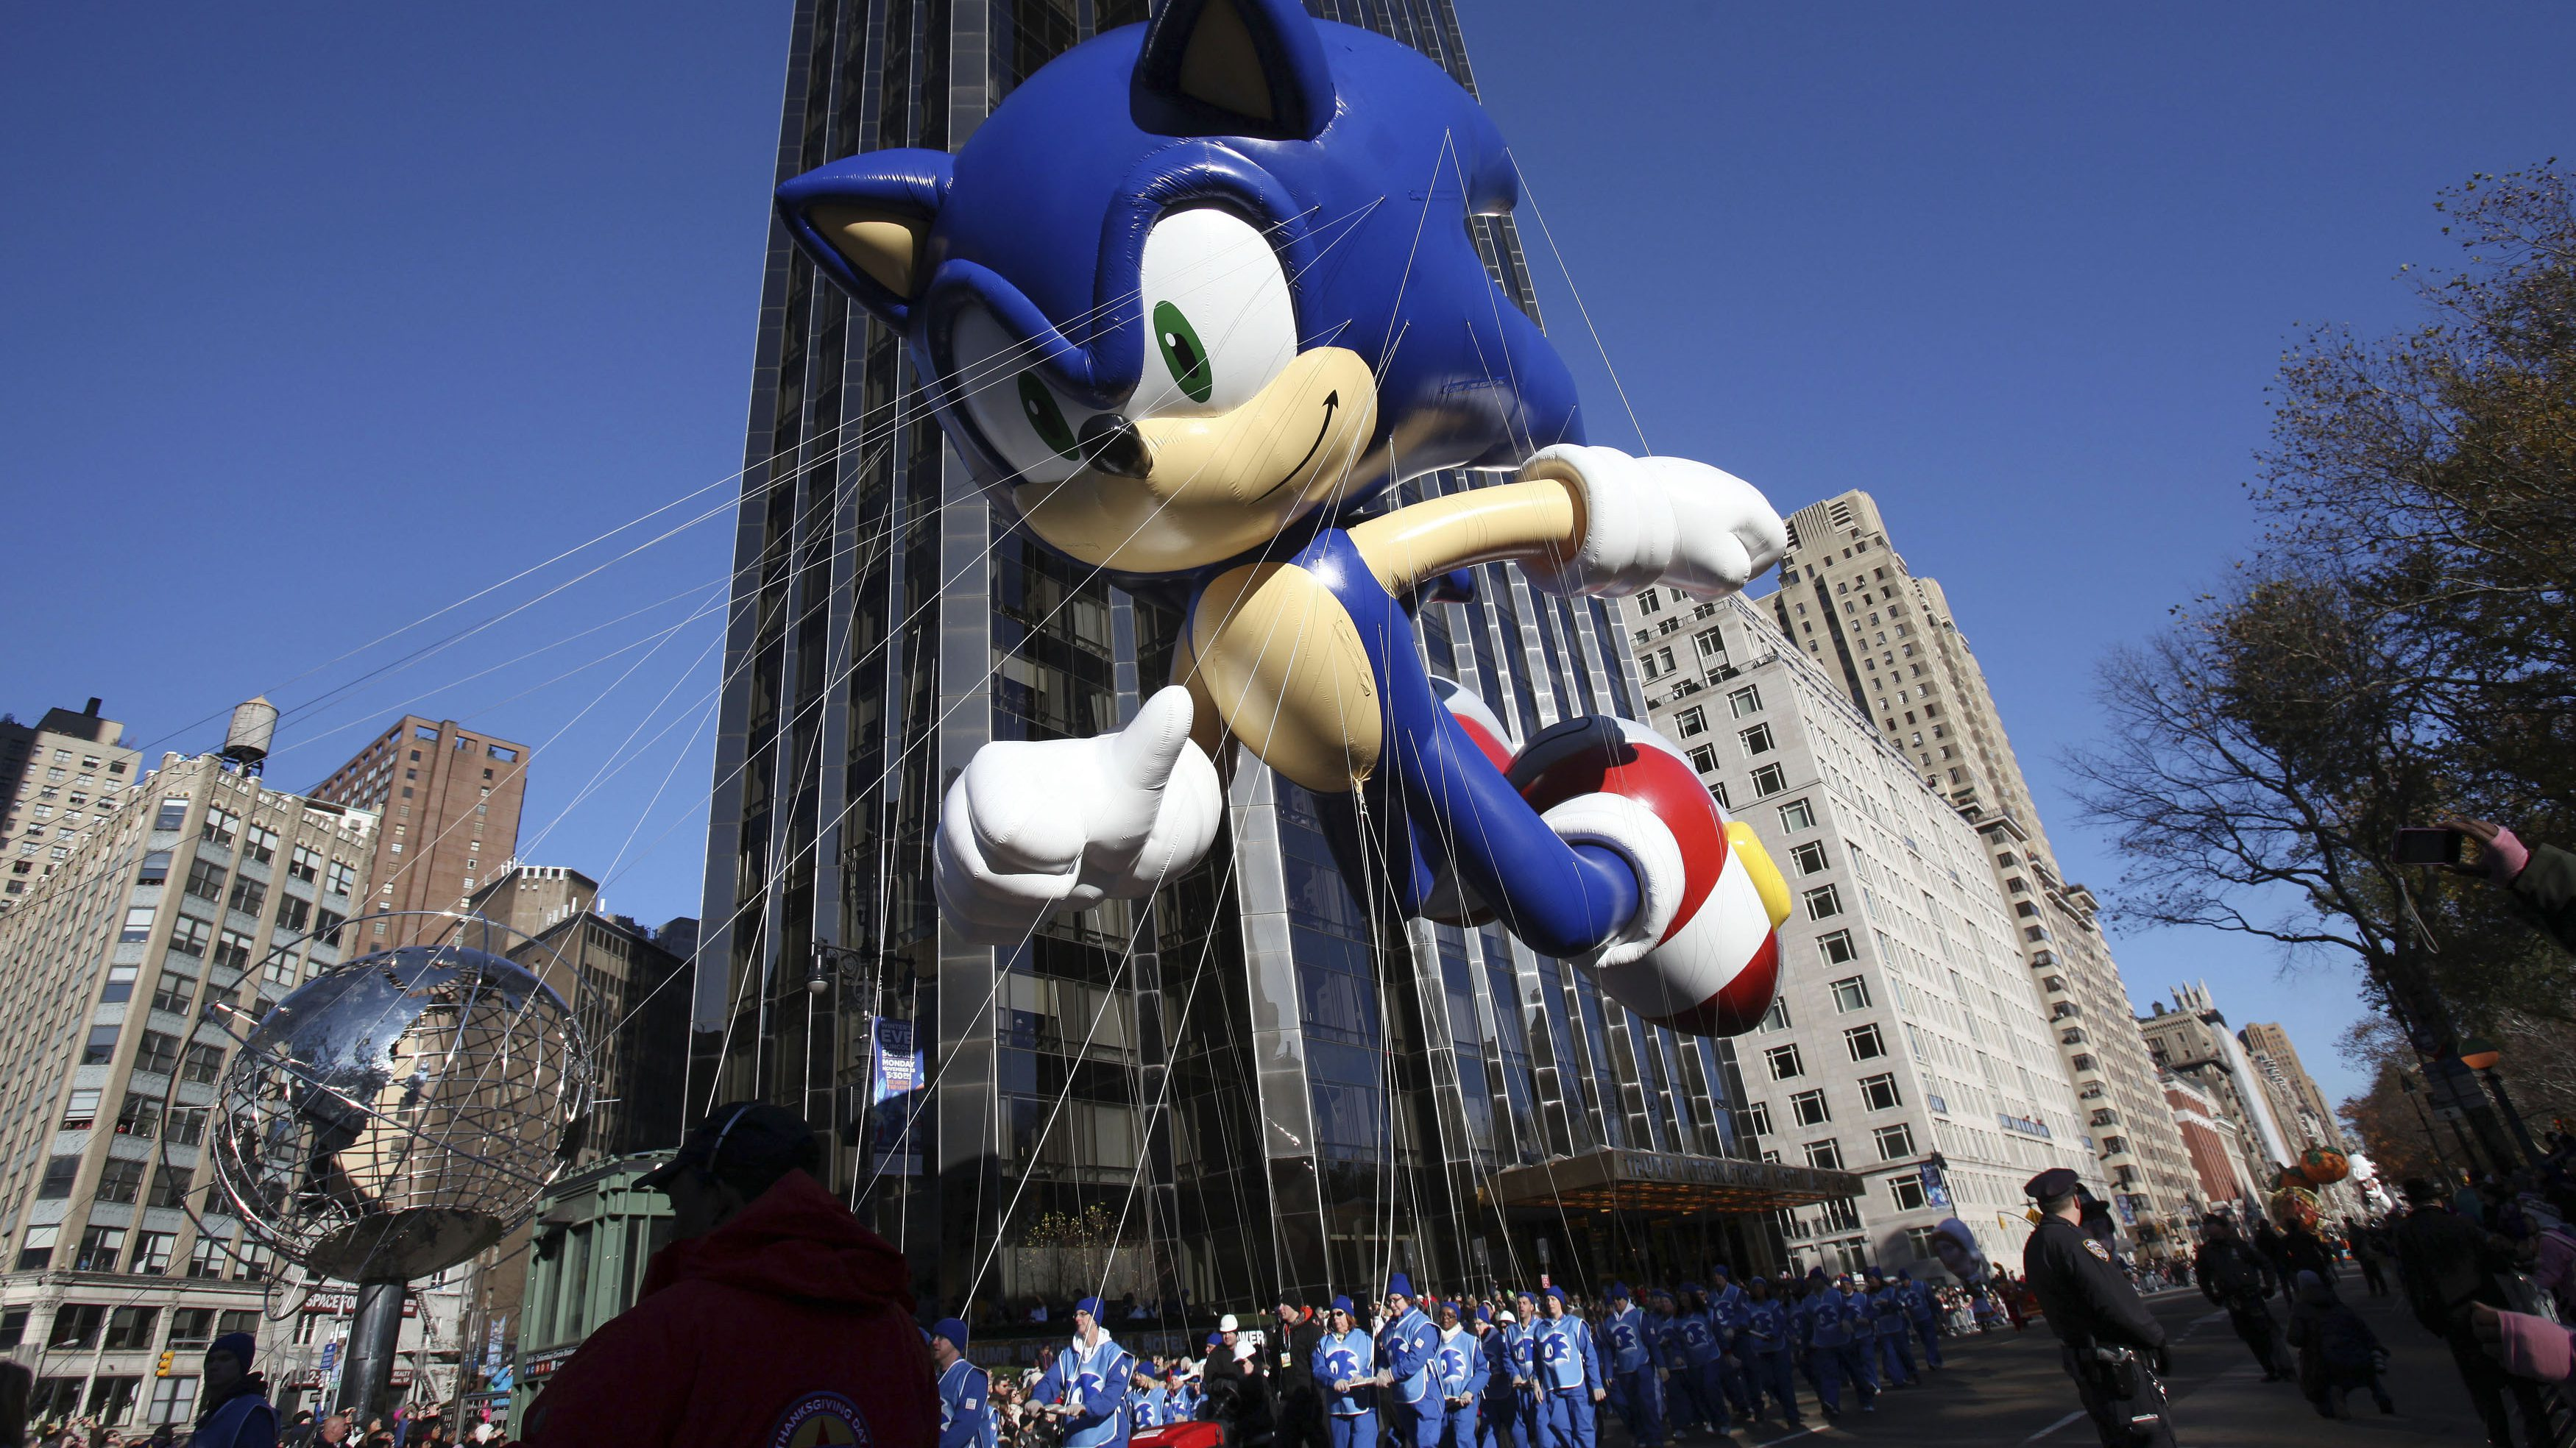 """The """"Sonic the Hedgehog"""" balloon floats around Columbus Circle during the 85th annual Macy's Thanksgiving day parade in New York November 24, 2011."""